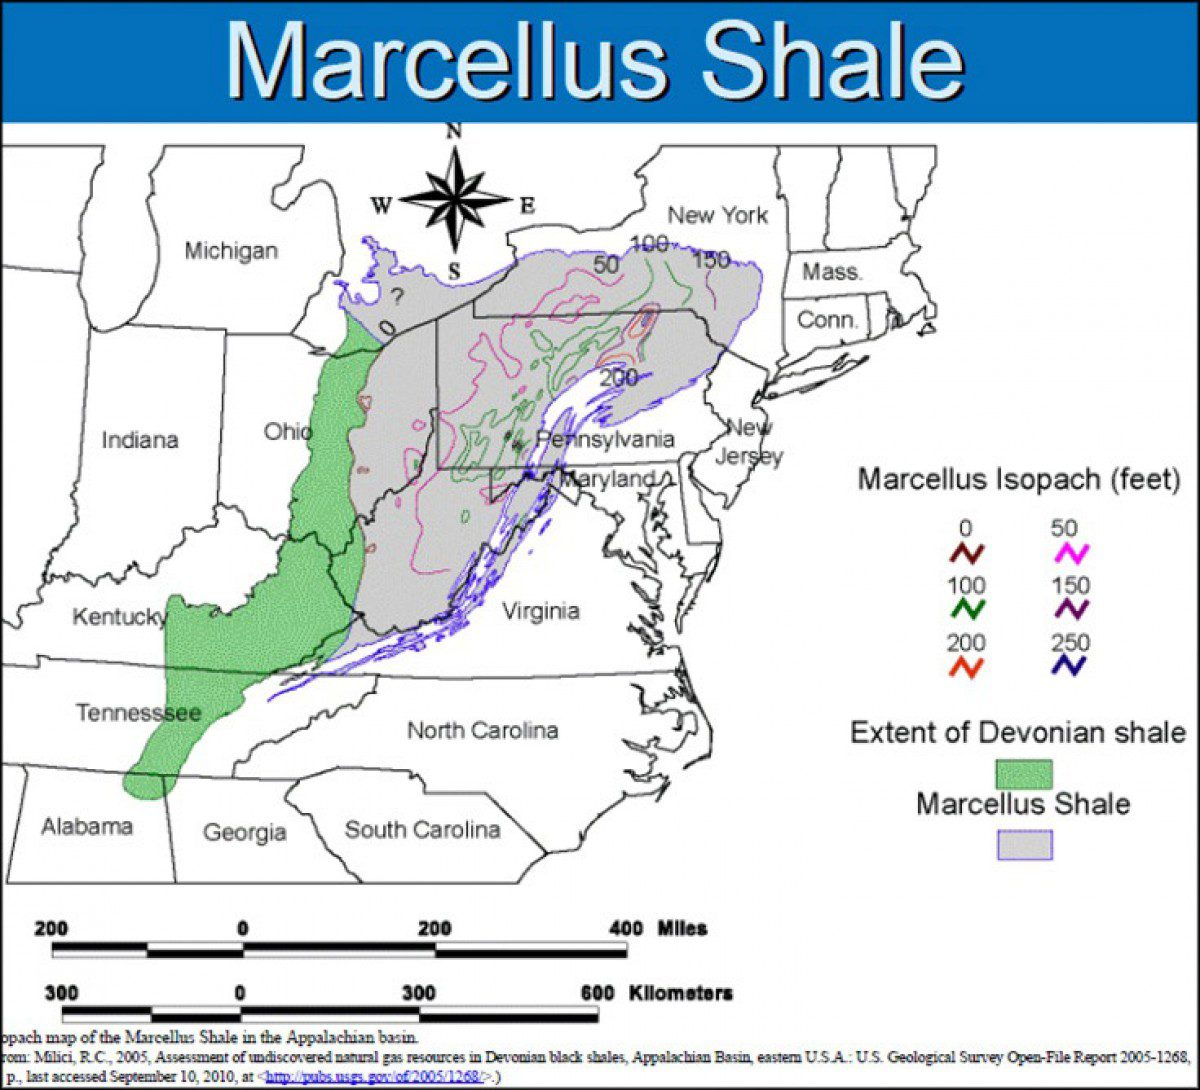 Marcellus-Shale-Map - Farm and Dairy on north hornell map, transco natural gas pipeline map, pa shale map, southern cayuga map, city of syracuse map, yonkers map, the bakken map, transco leidy line map, onondaga nation map, east syracuse map, hammondsport map, kalamazoo map, three rivers map, hannibal map, livingston manor map, lakeville map, gananda map, haynesville shale map, albany map, lafayette map,